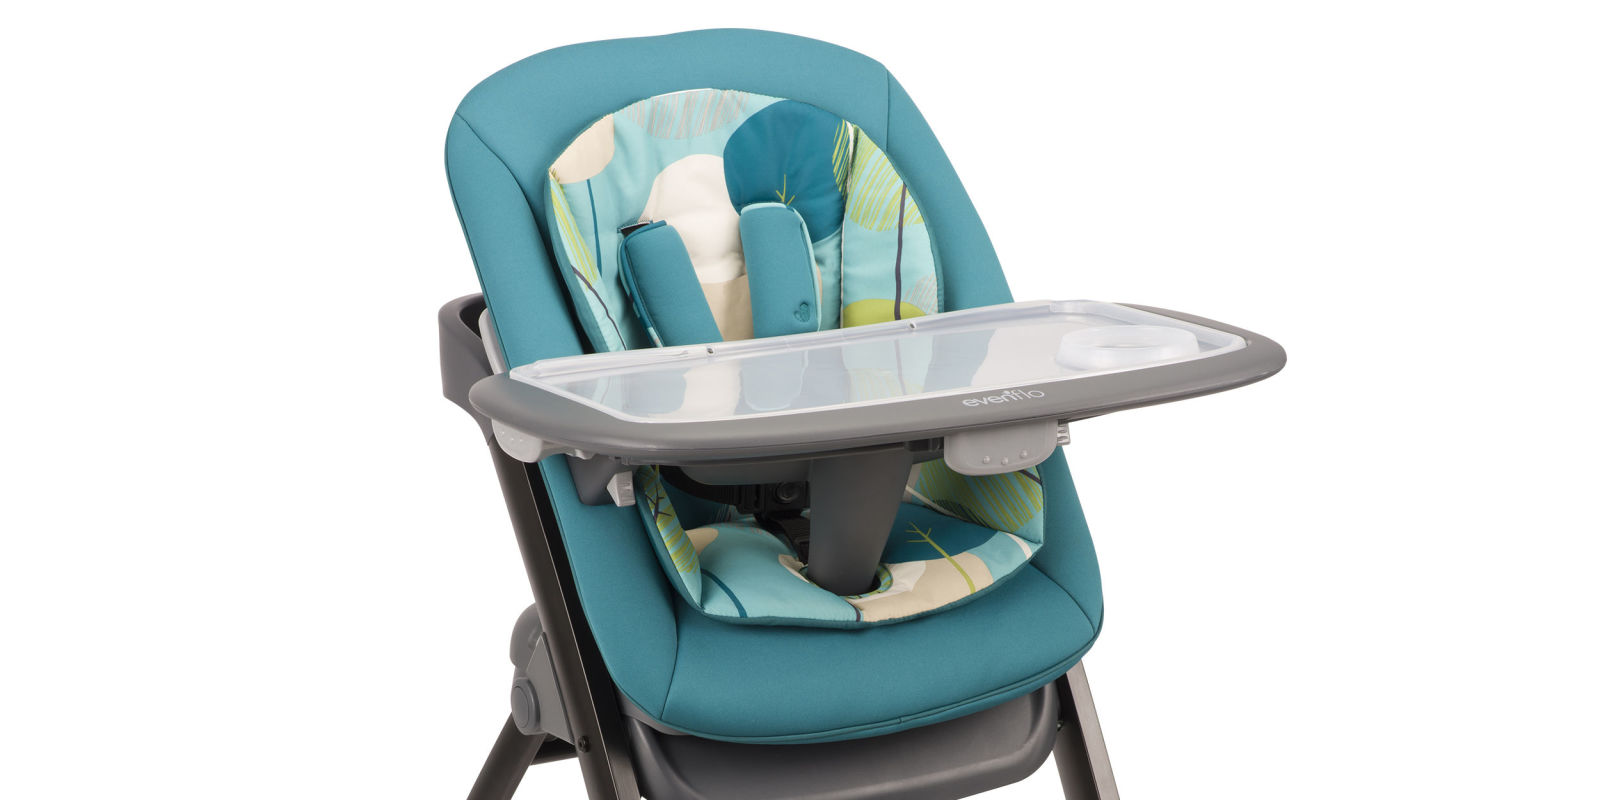 table high chair reviews wheel for office evenflo quatore 4 in 1 review